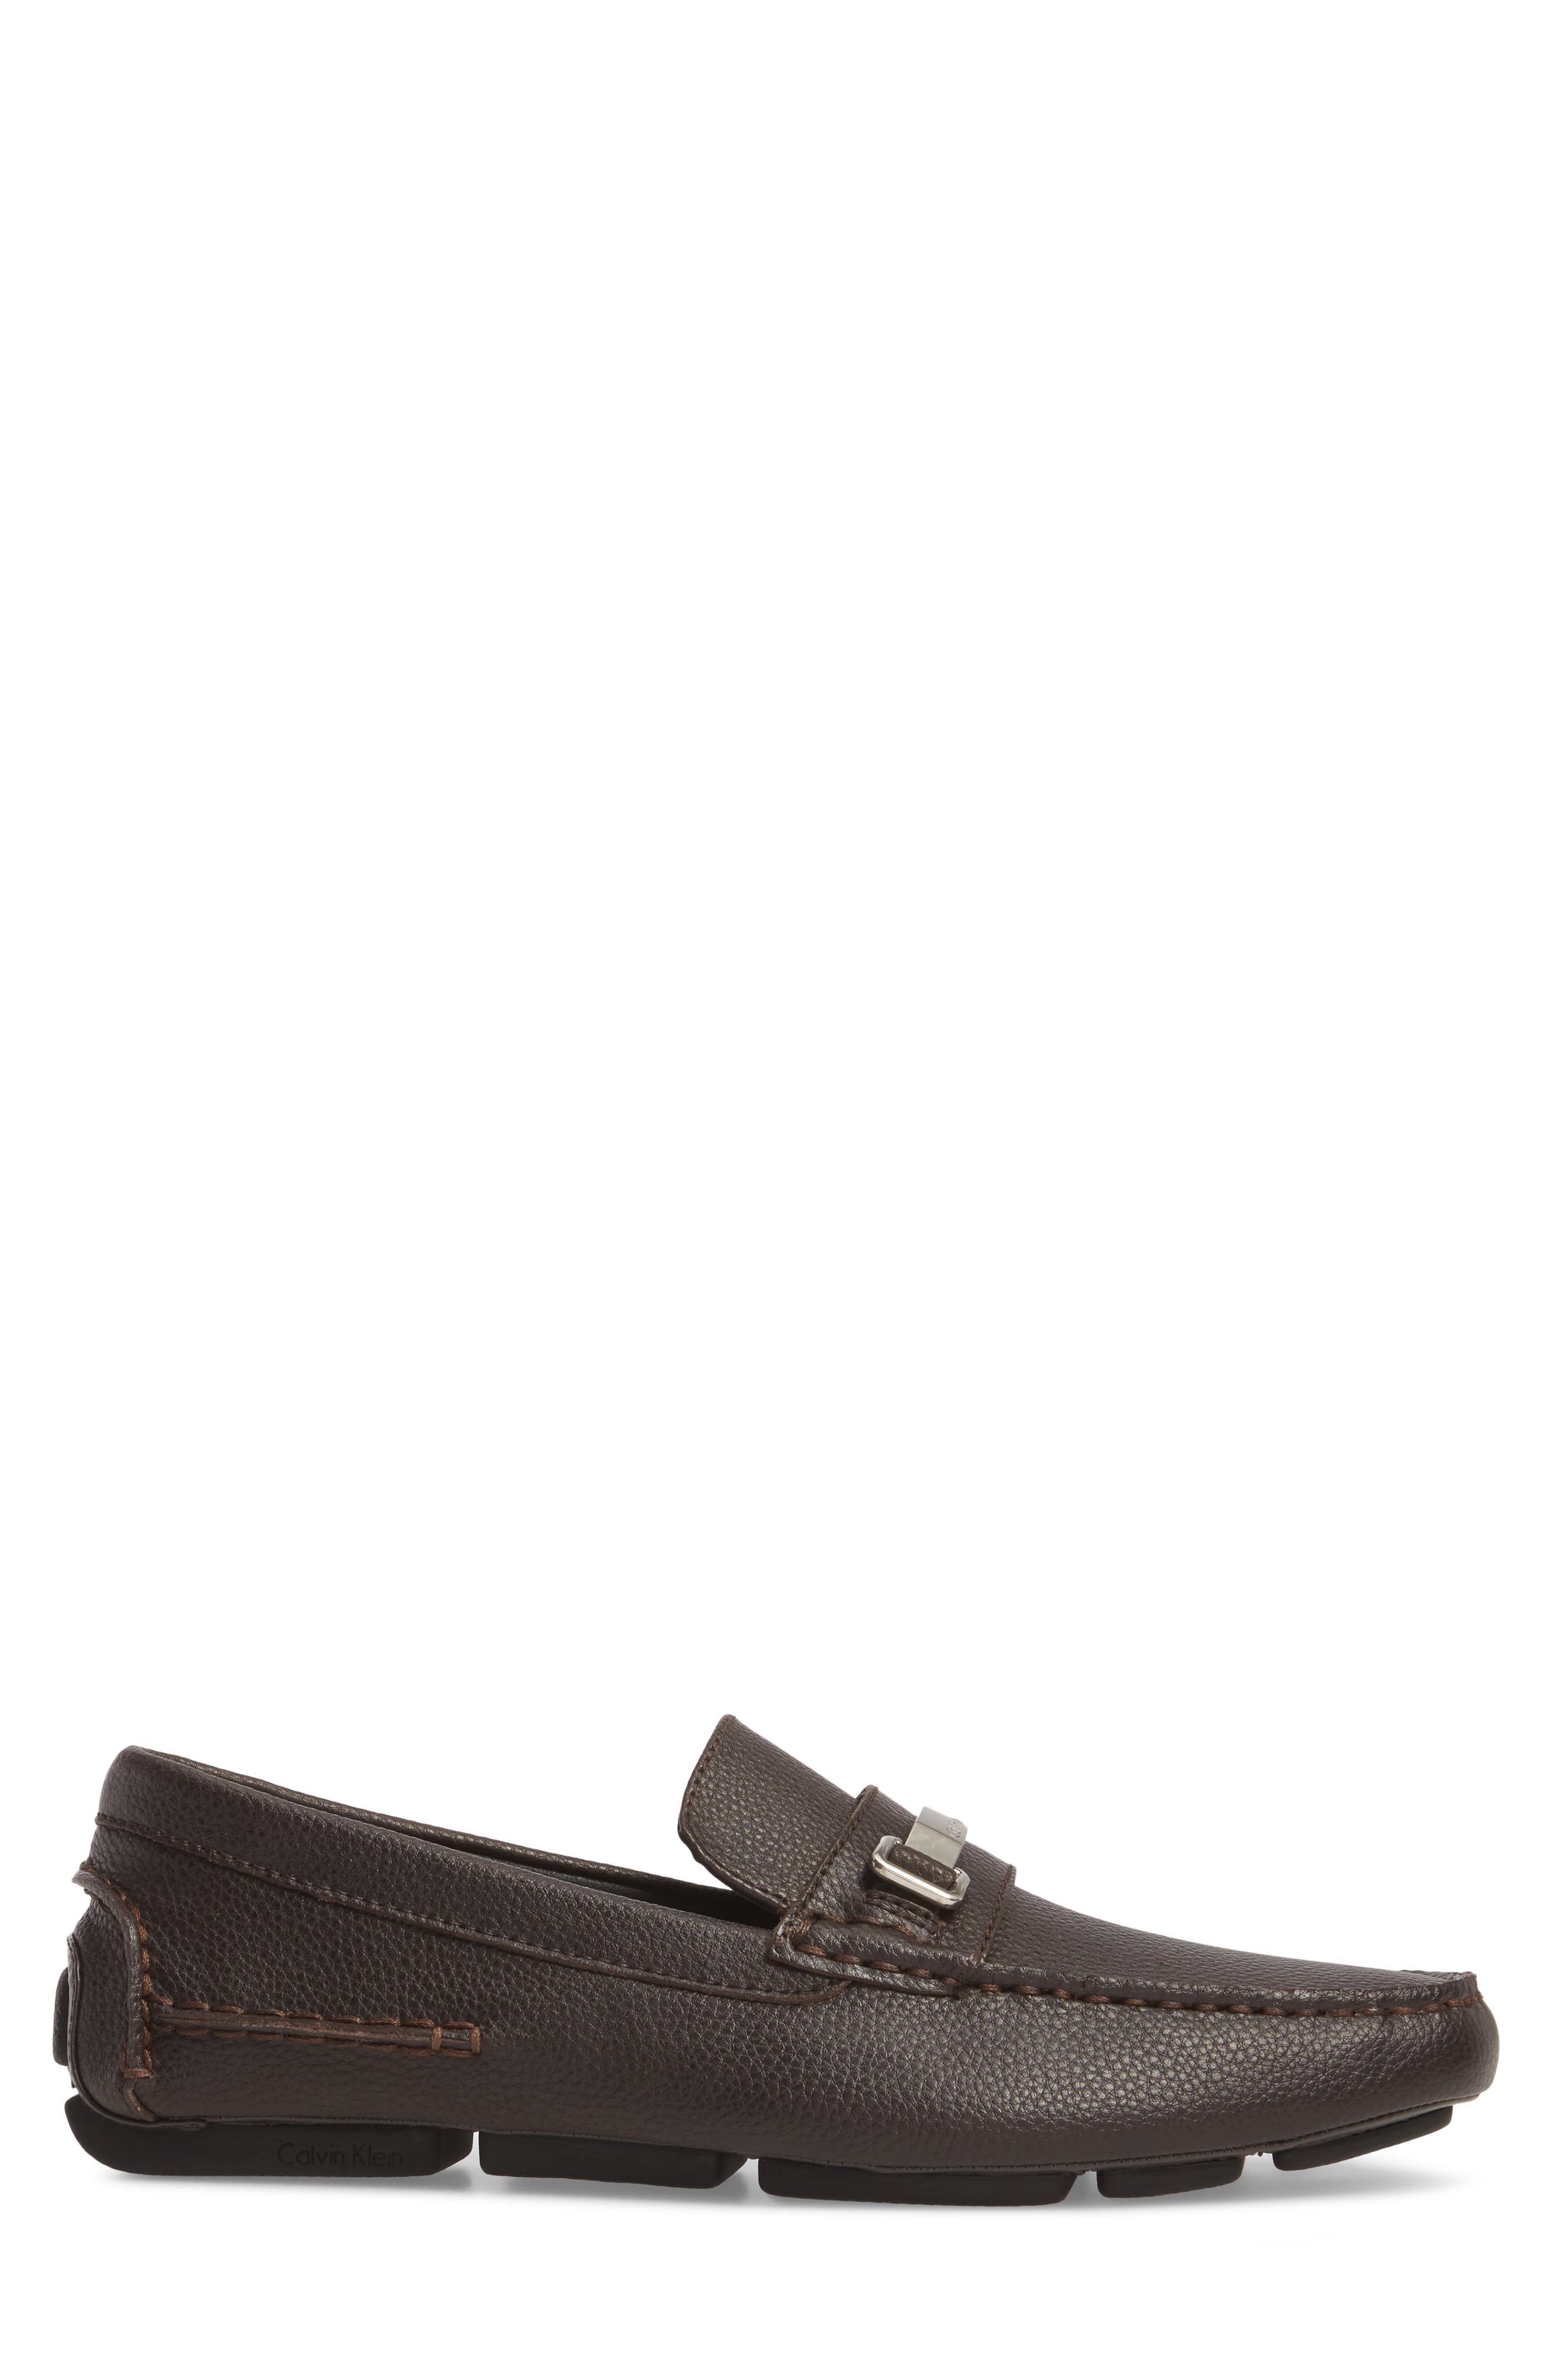 Mikos Driving Shoe,                             Alternate thumbnail 3, color,                             Dark Brown Leather